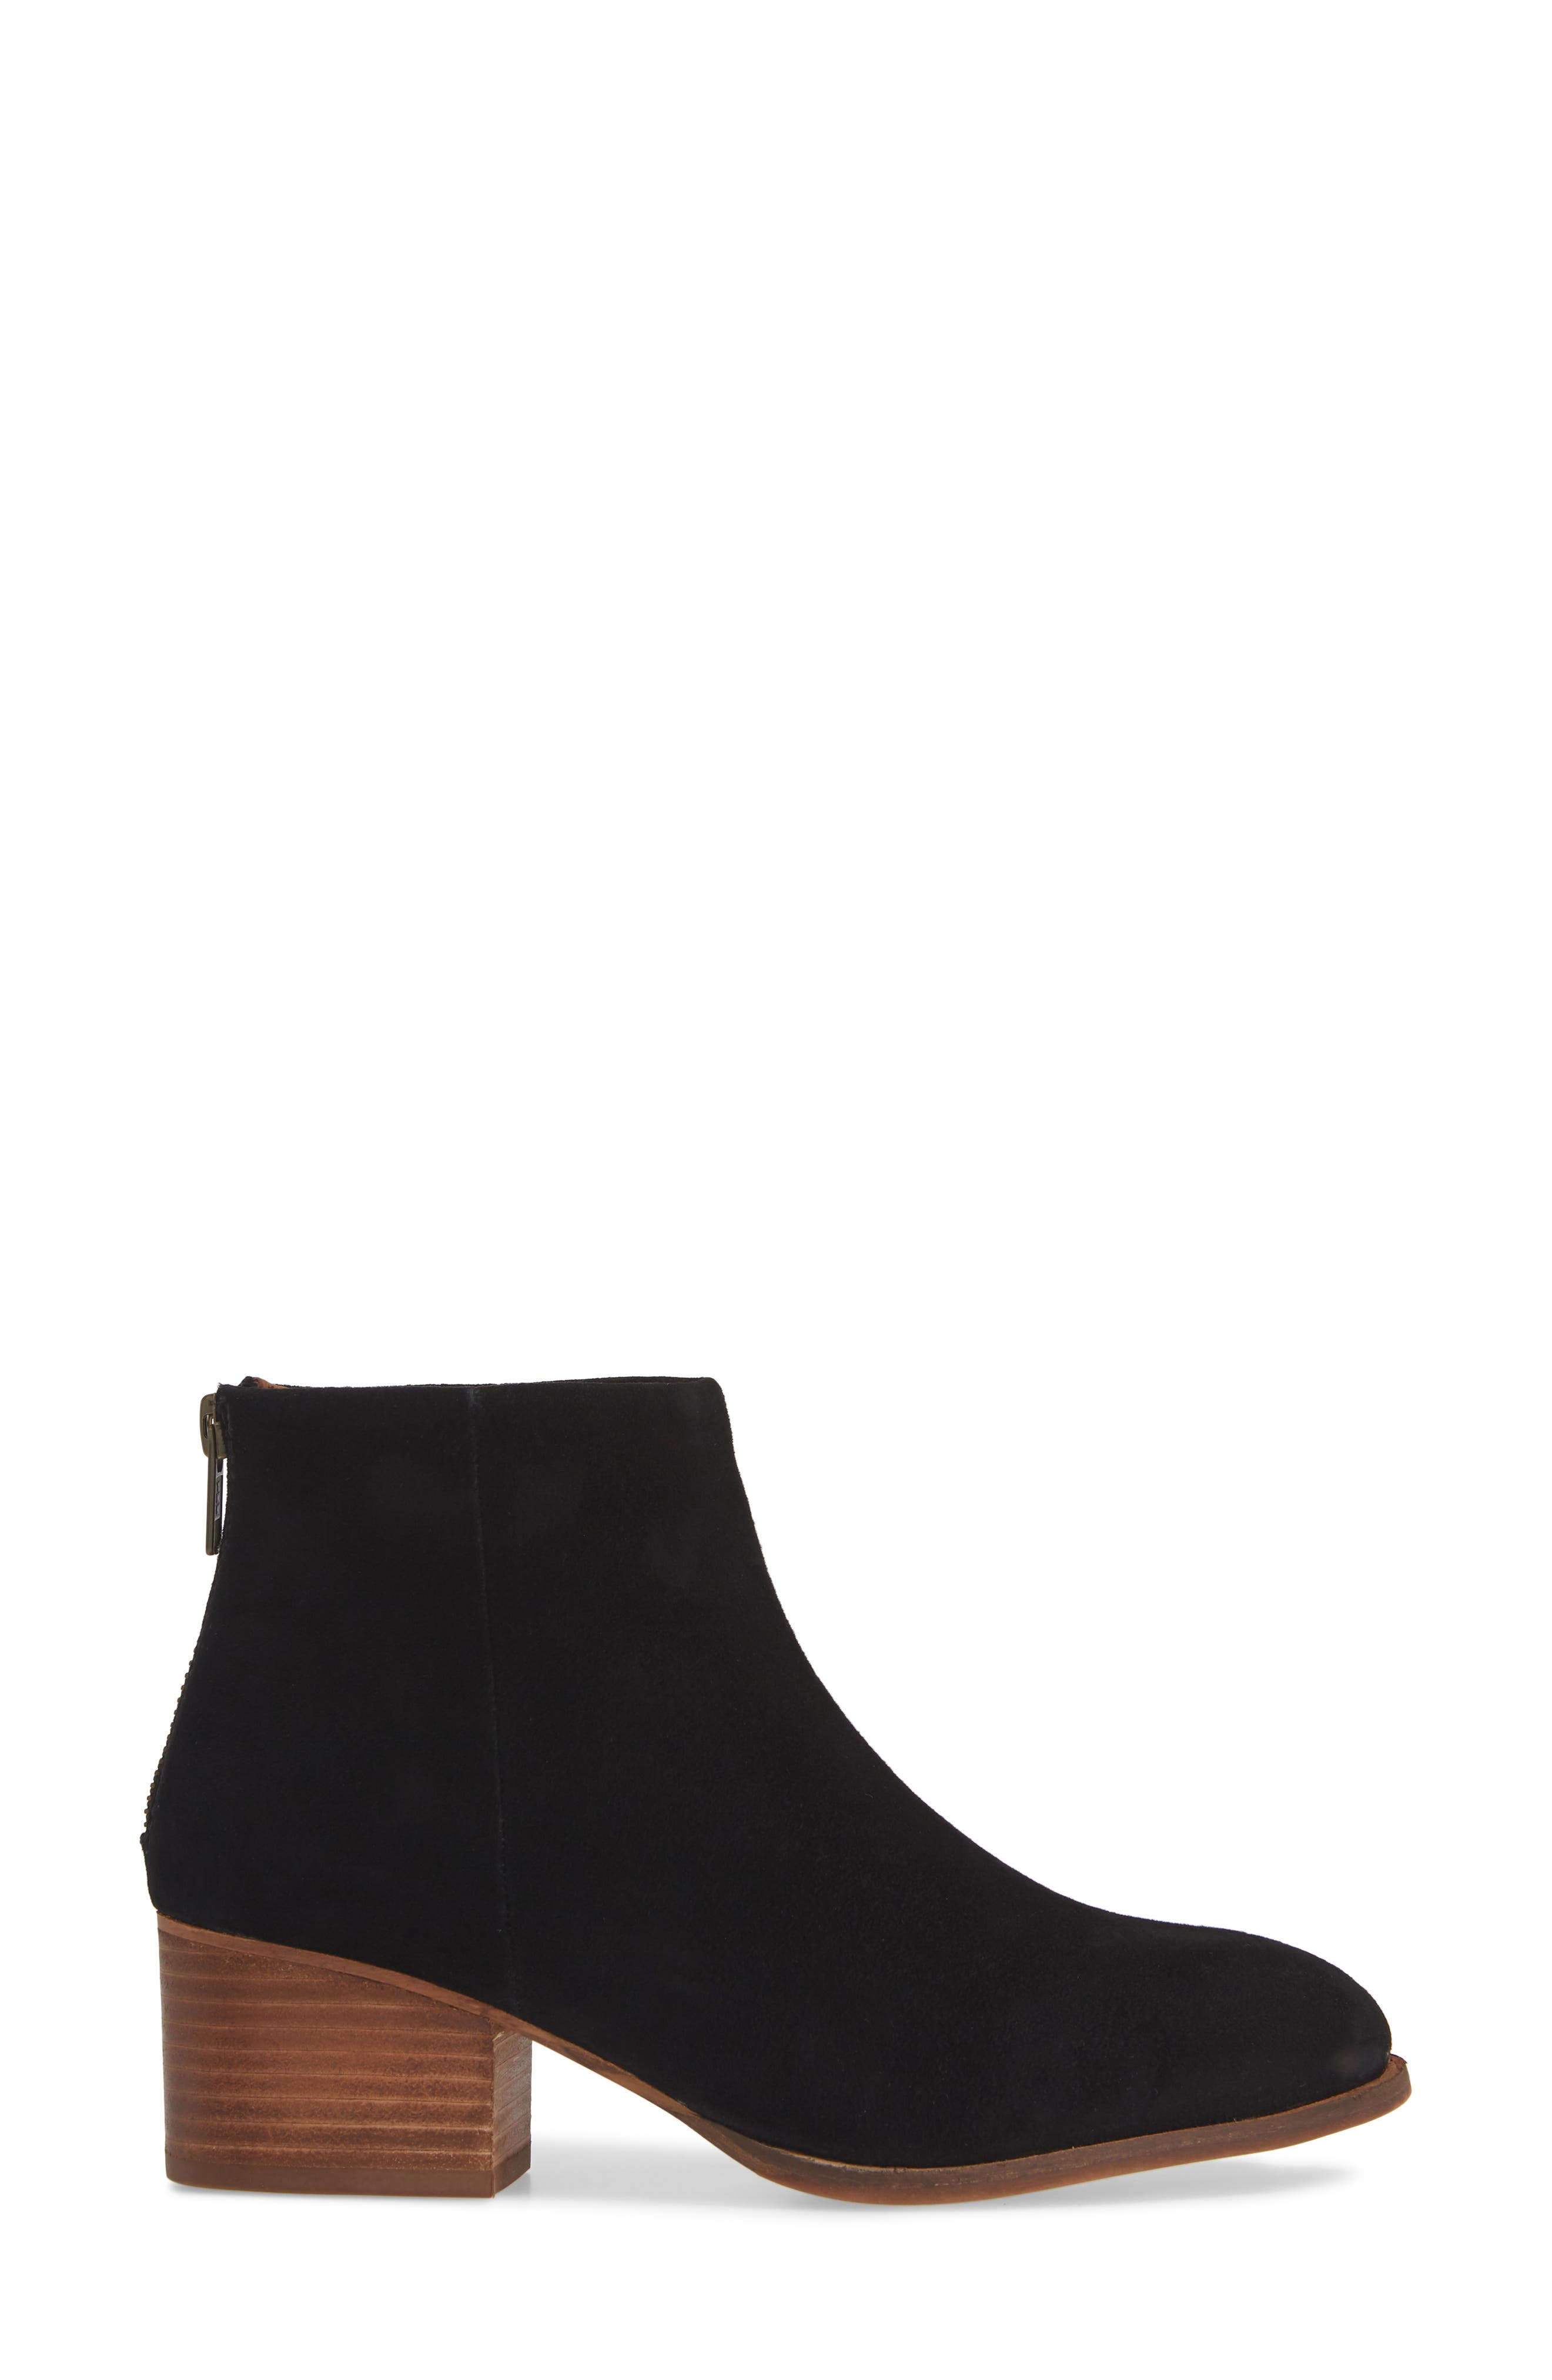 Floodplain Block Heel Bootie,                             Alternate thumbnail 3, color,                             BLACK SUEDE